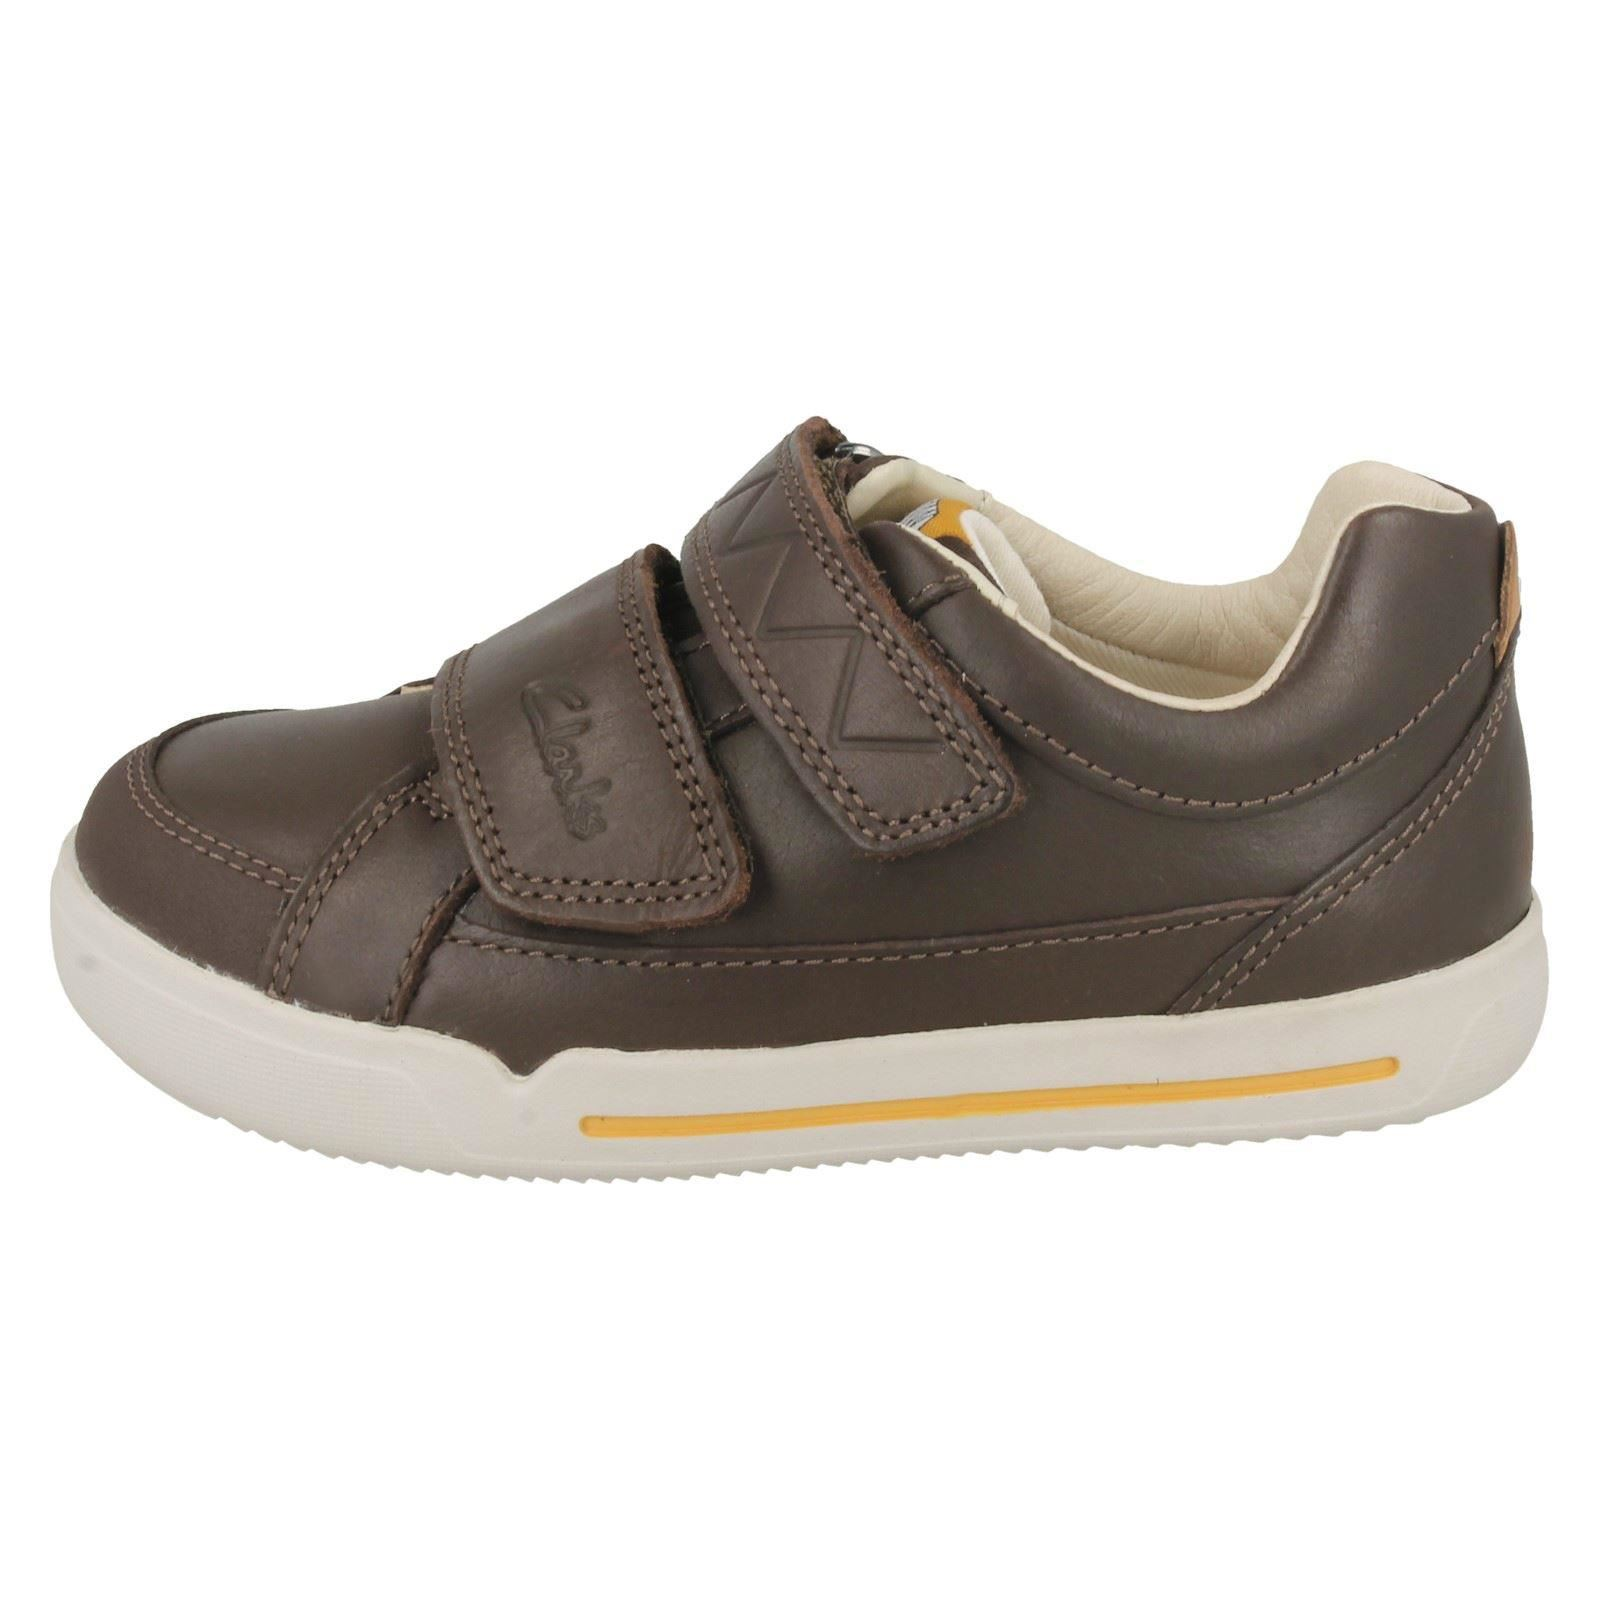 """Boys Clarks Double Strap Casual Shoes /""""Lil Folk Toby/"""""""